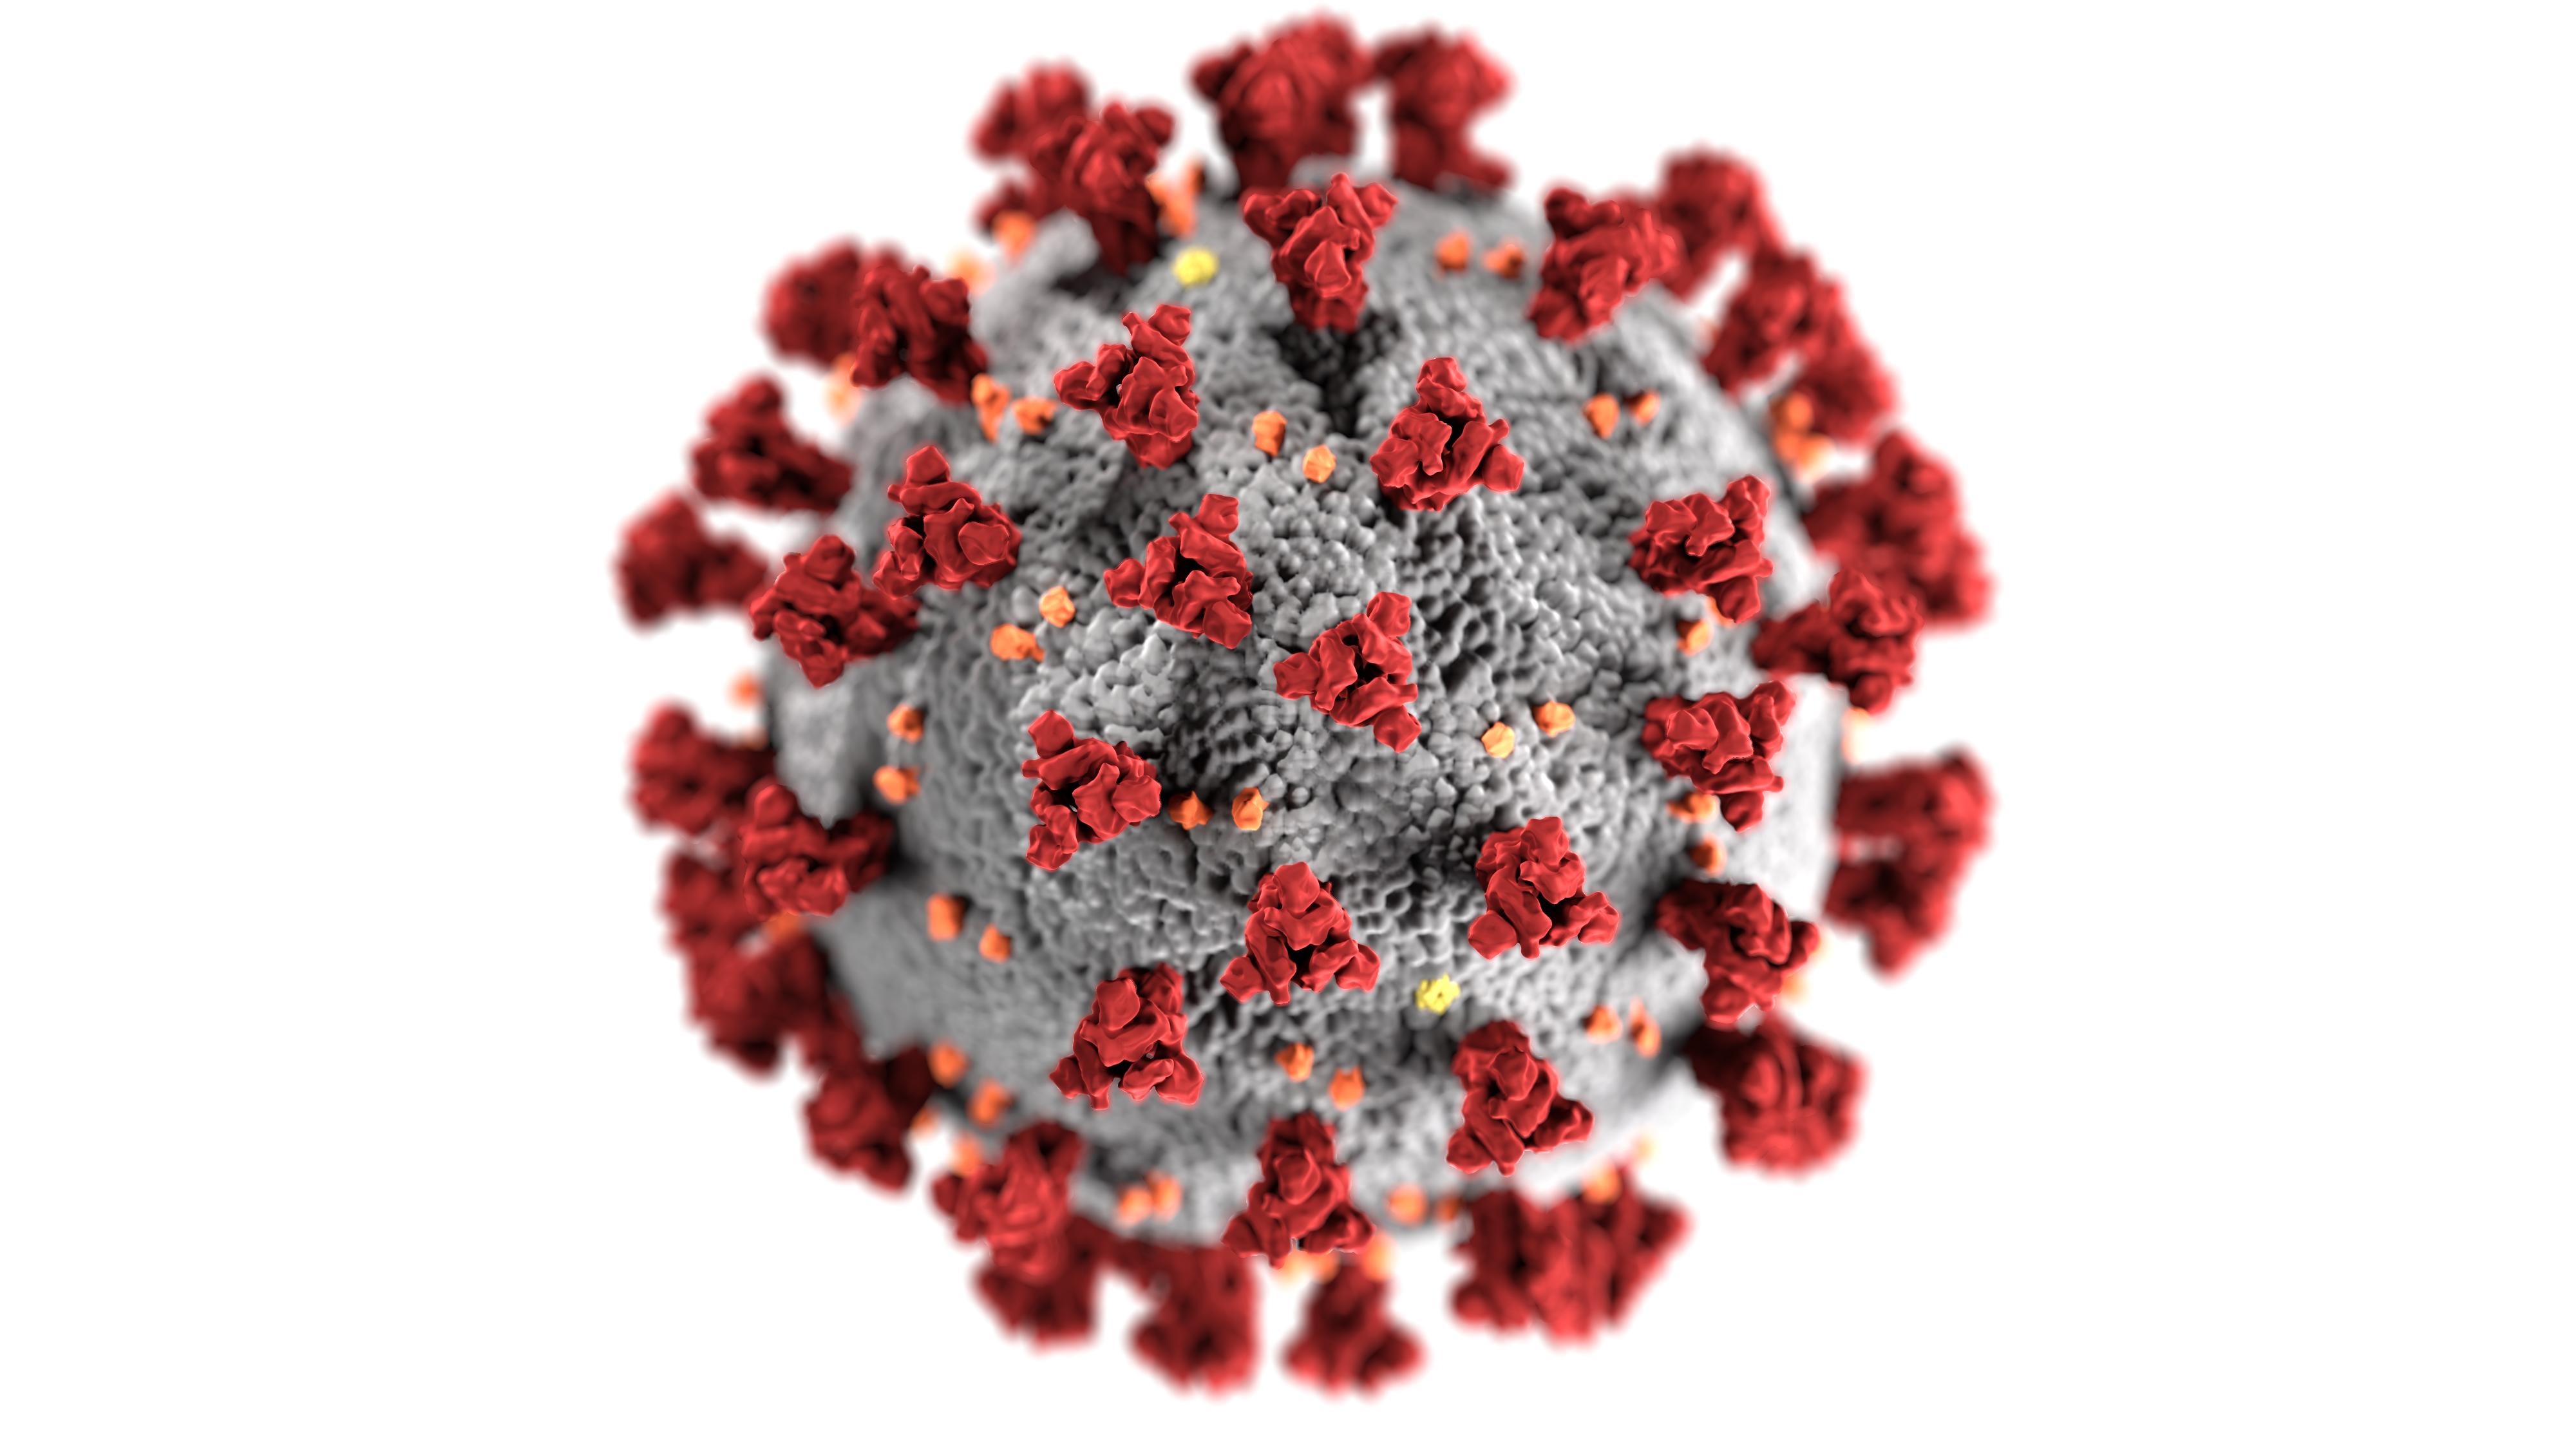 Detailed view of a coronavirus